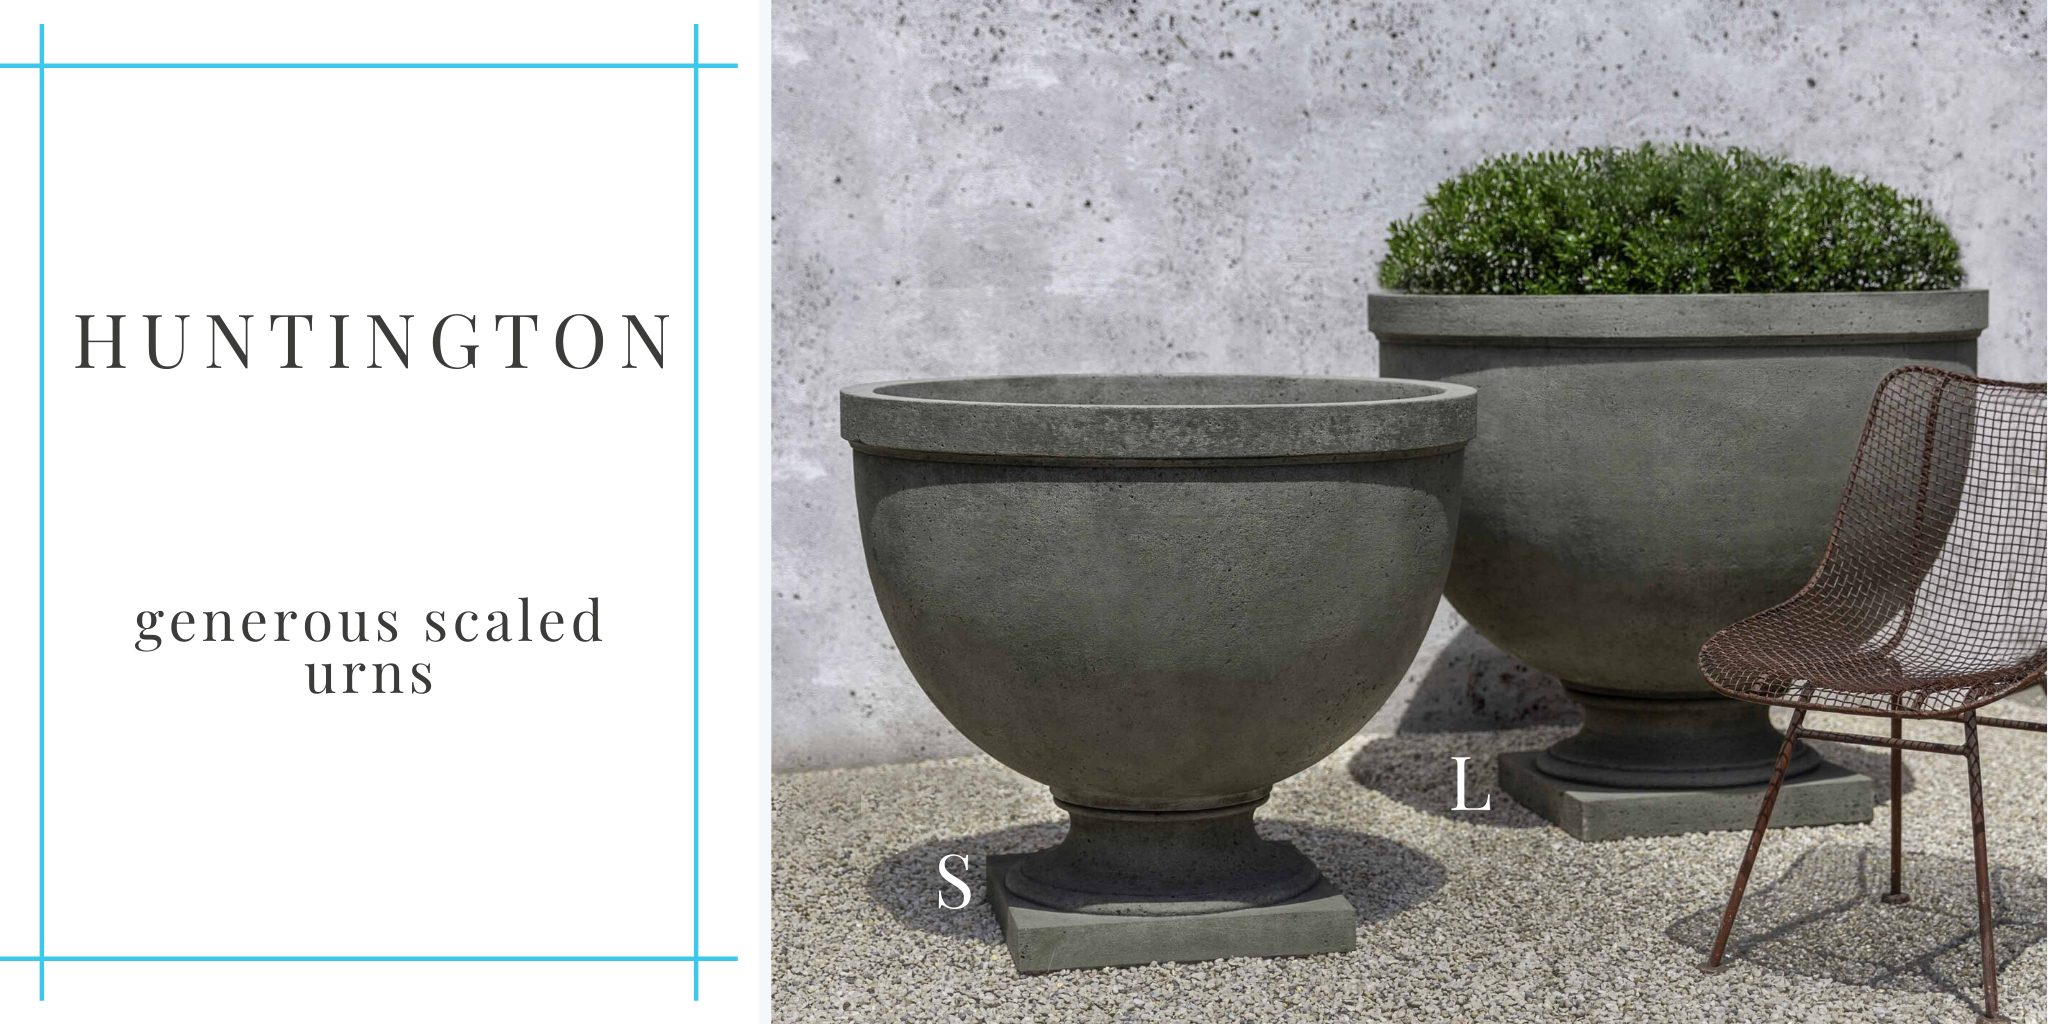 huntington-urn-set-by-campania